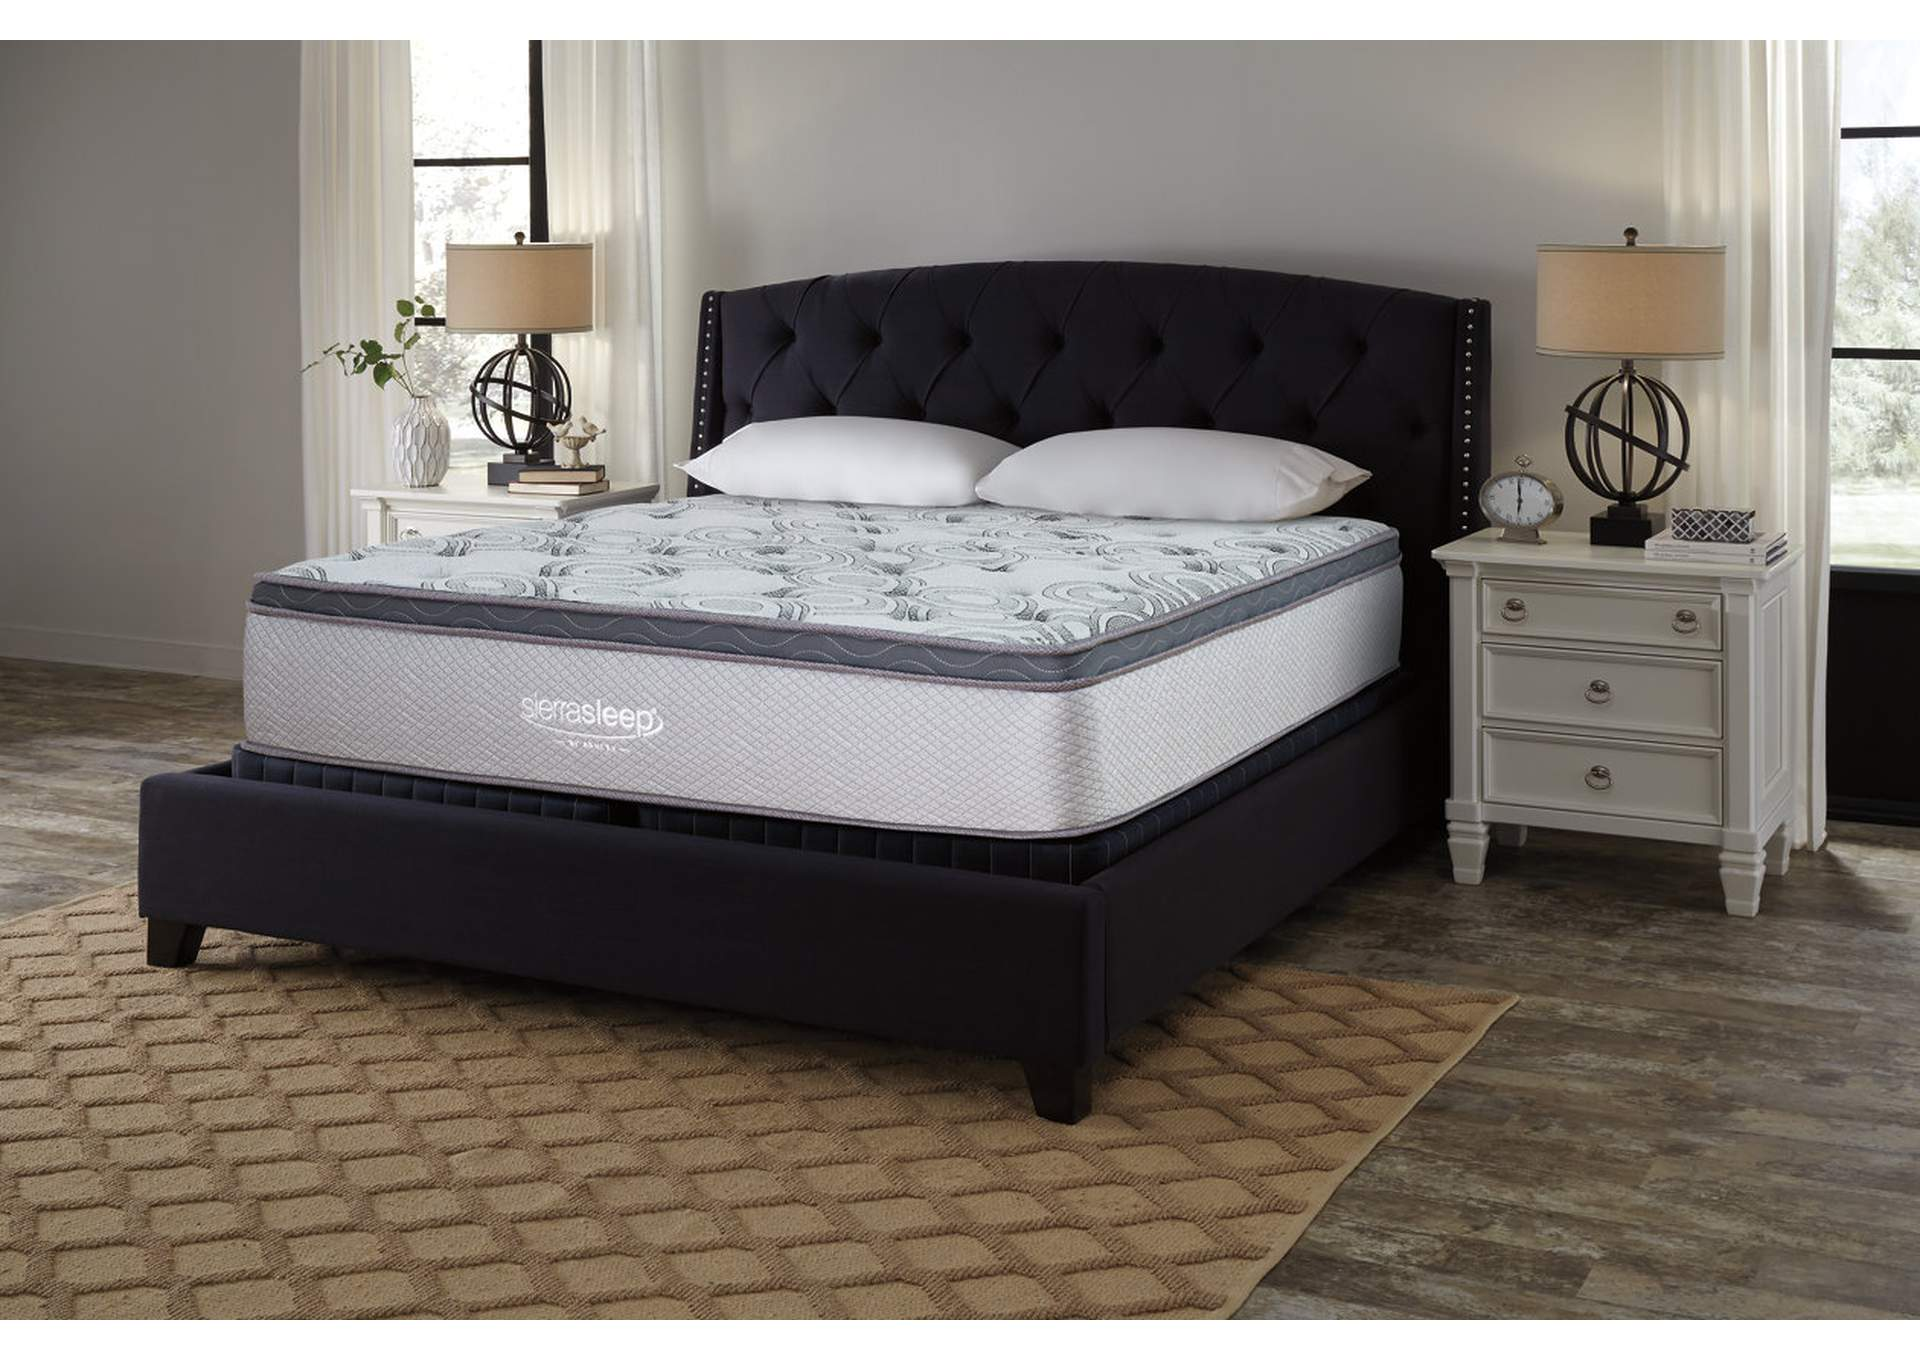 Augusta King Mattress,Sierra Sleep by Ashley